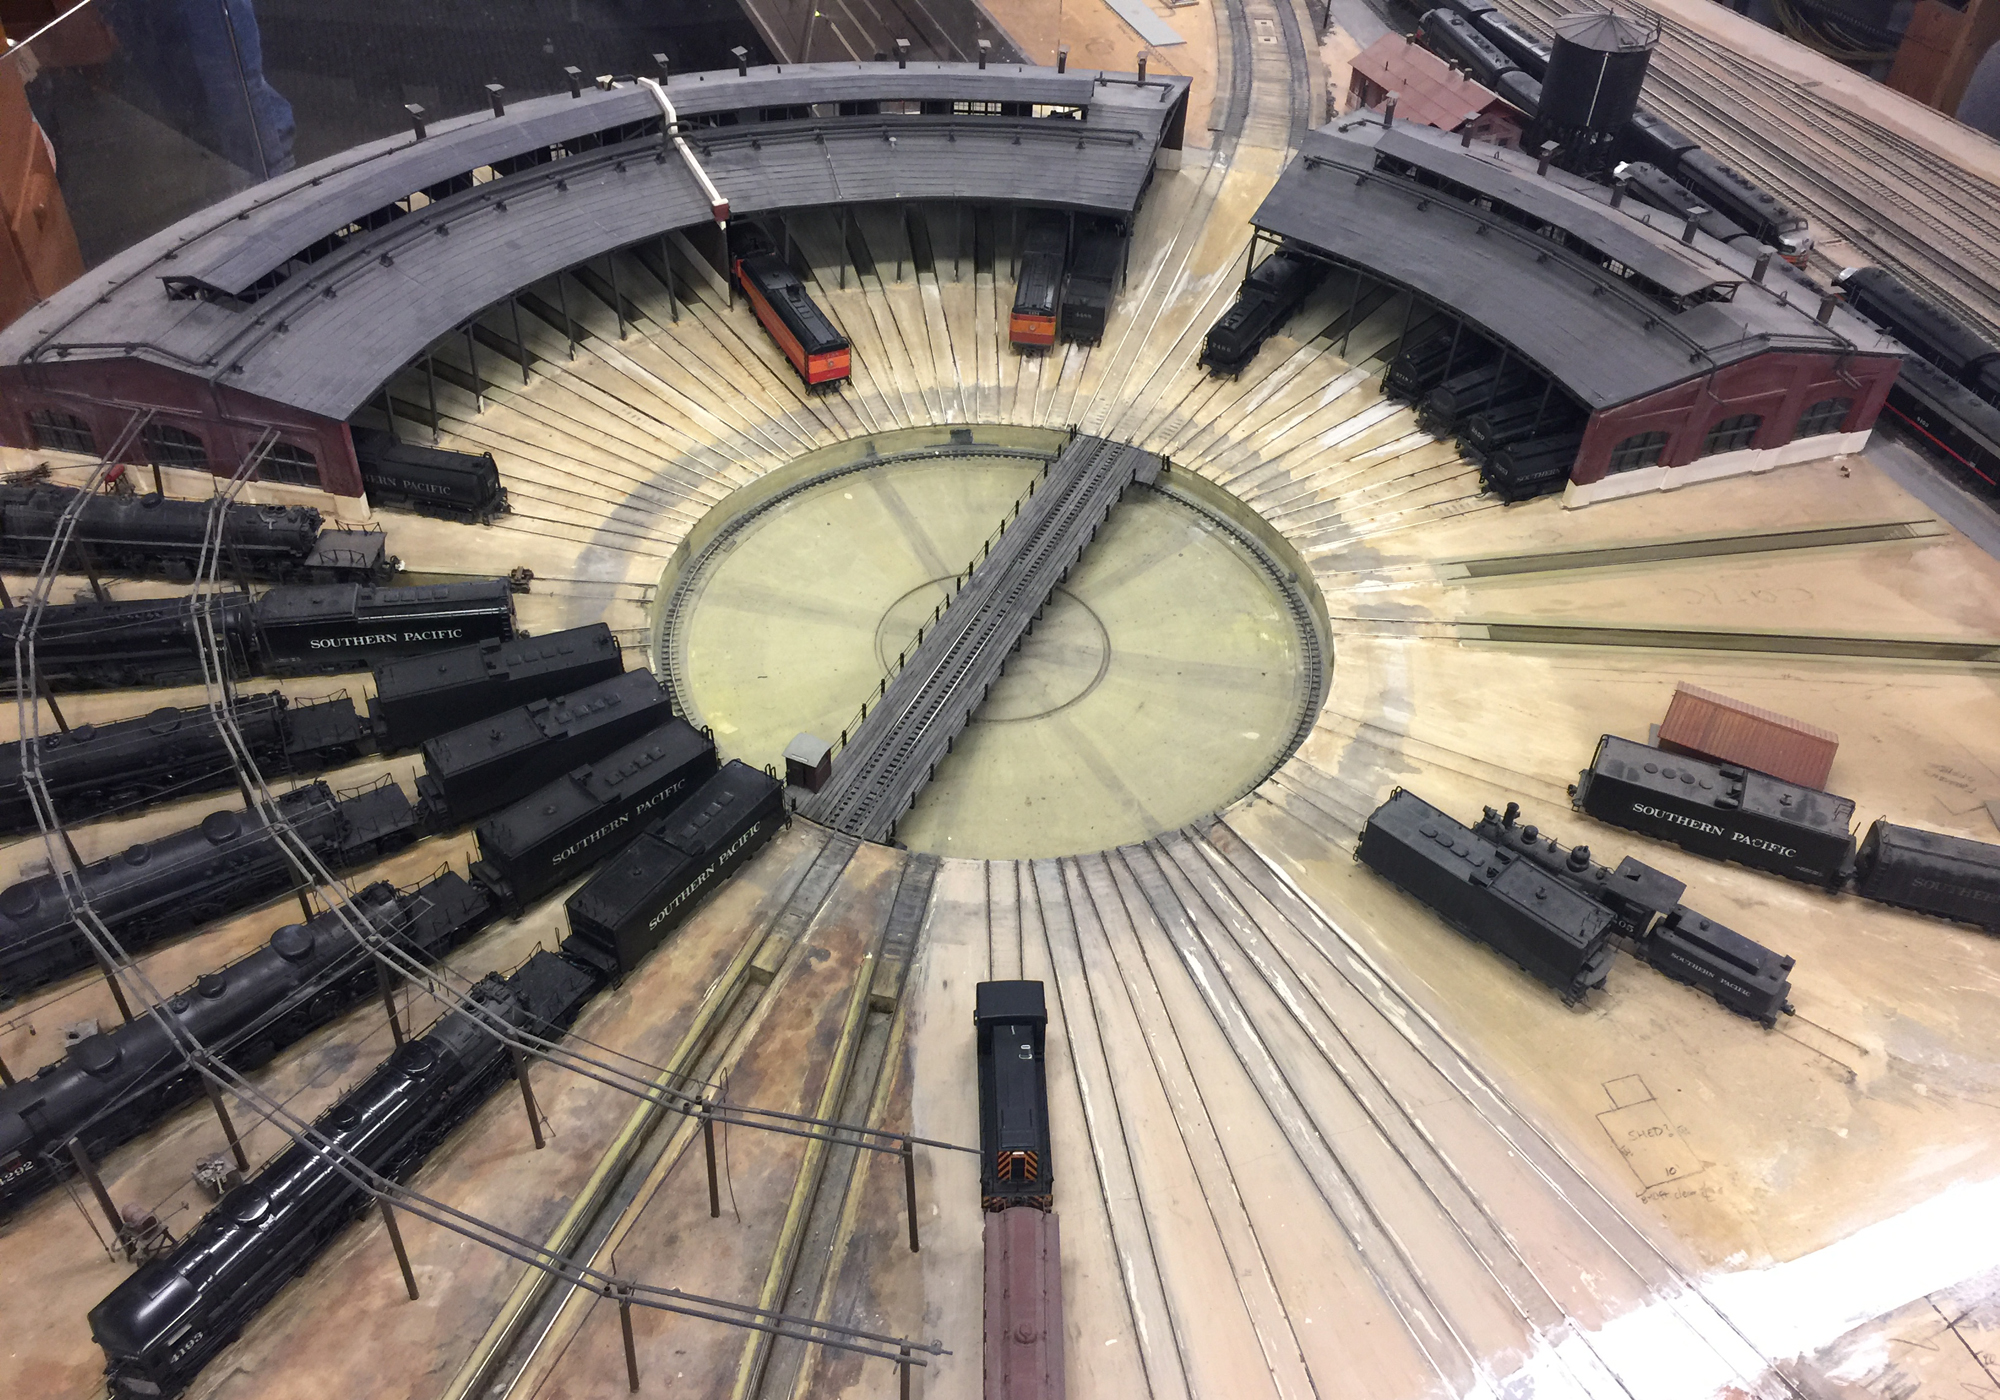 The roundhouse at the La Mesa Model Railroad Club, San Diego, California, USA.